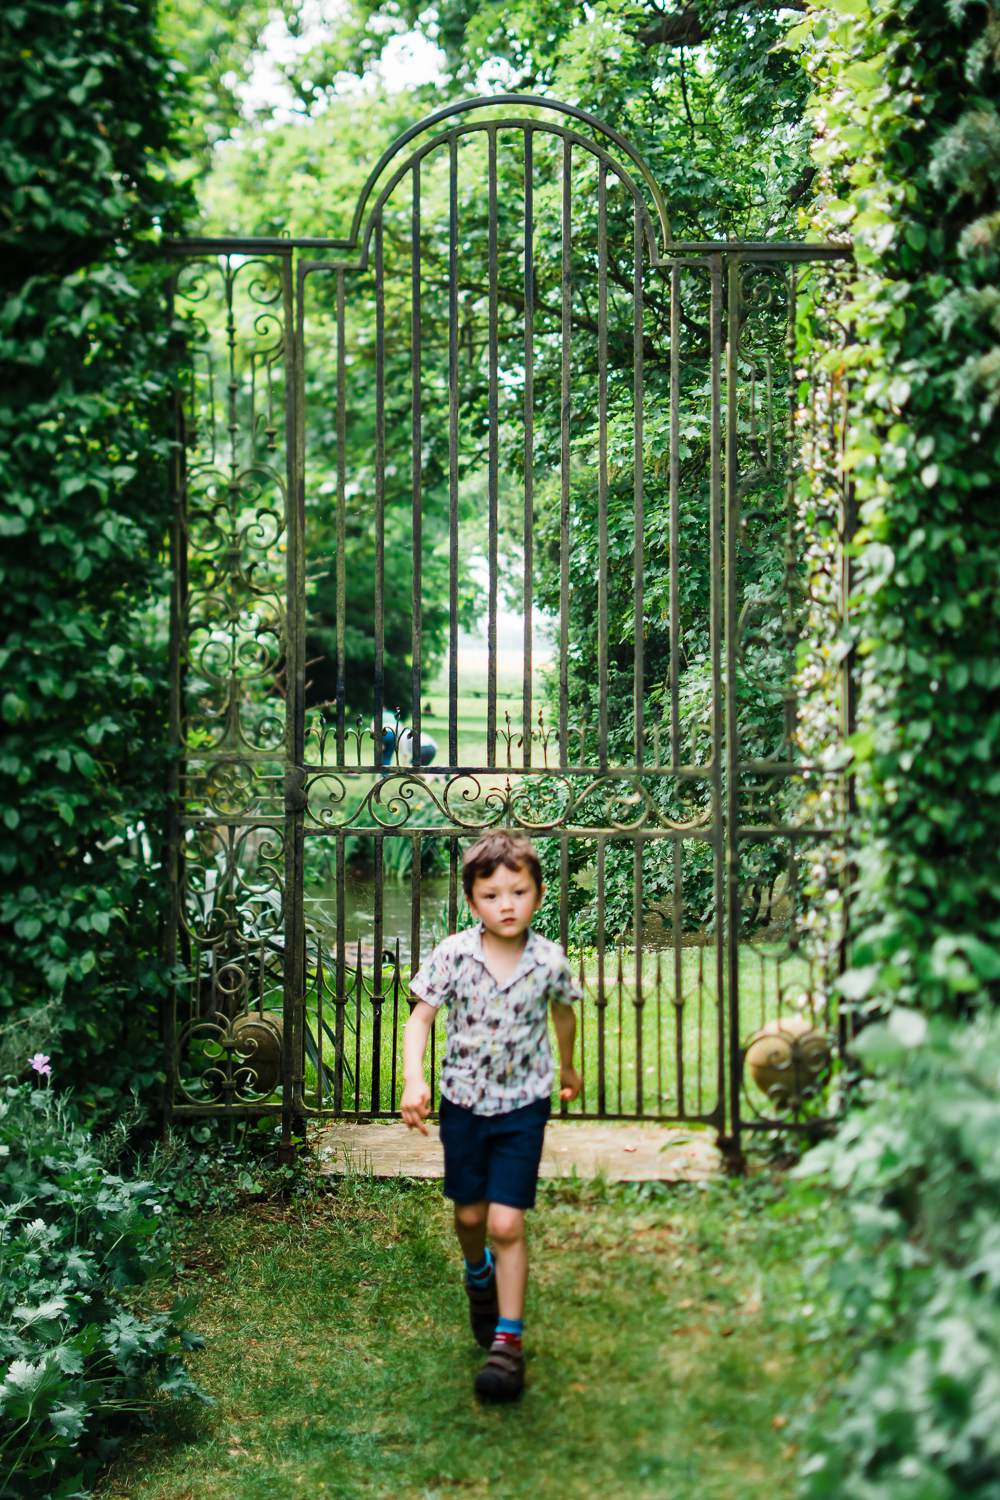 Boy walking in front of gate at Island Hall garden, Huntingdon